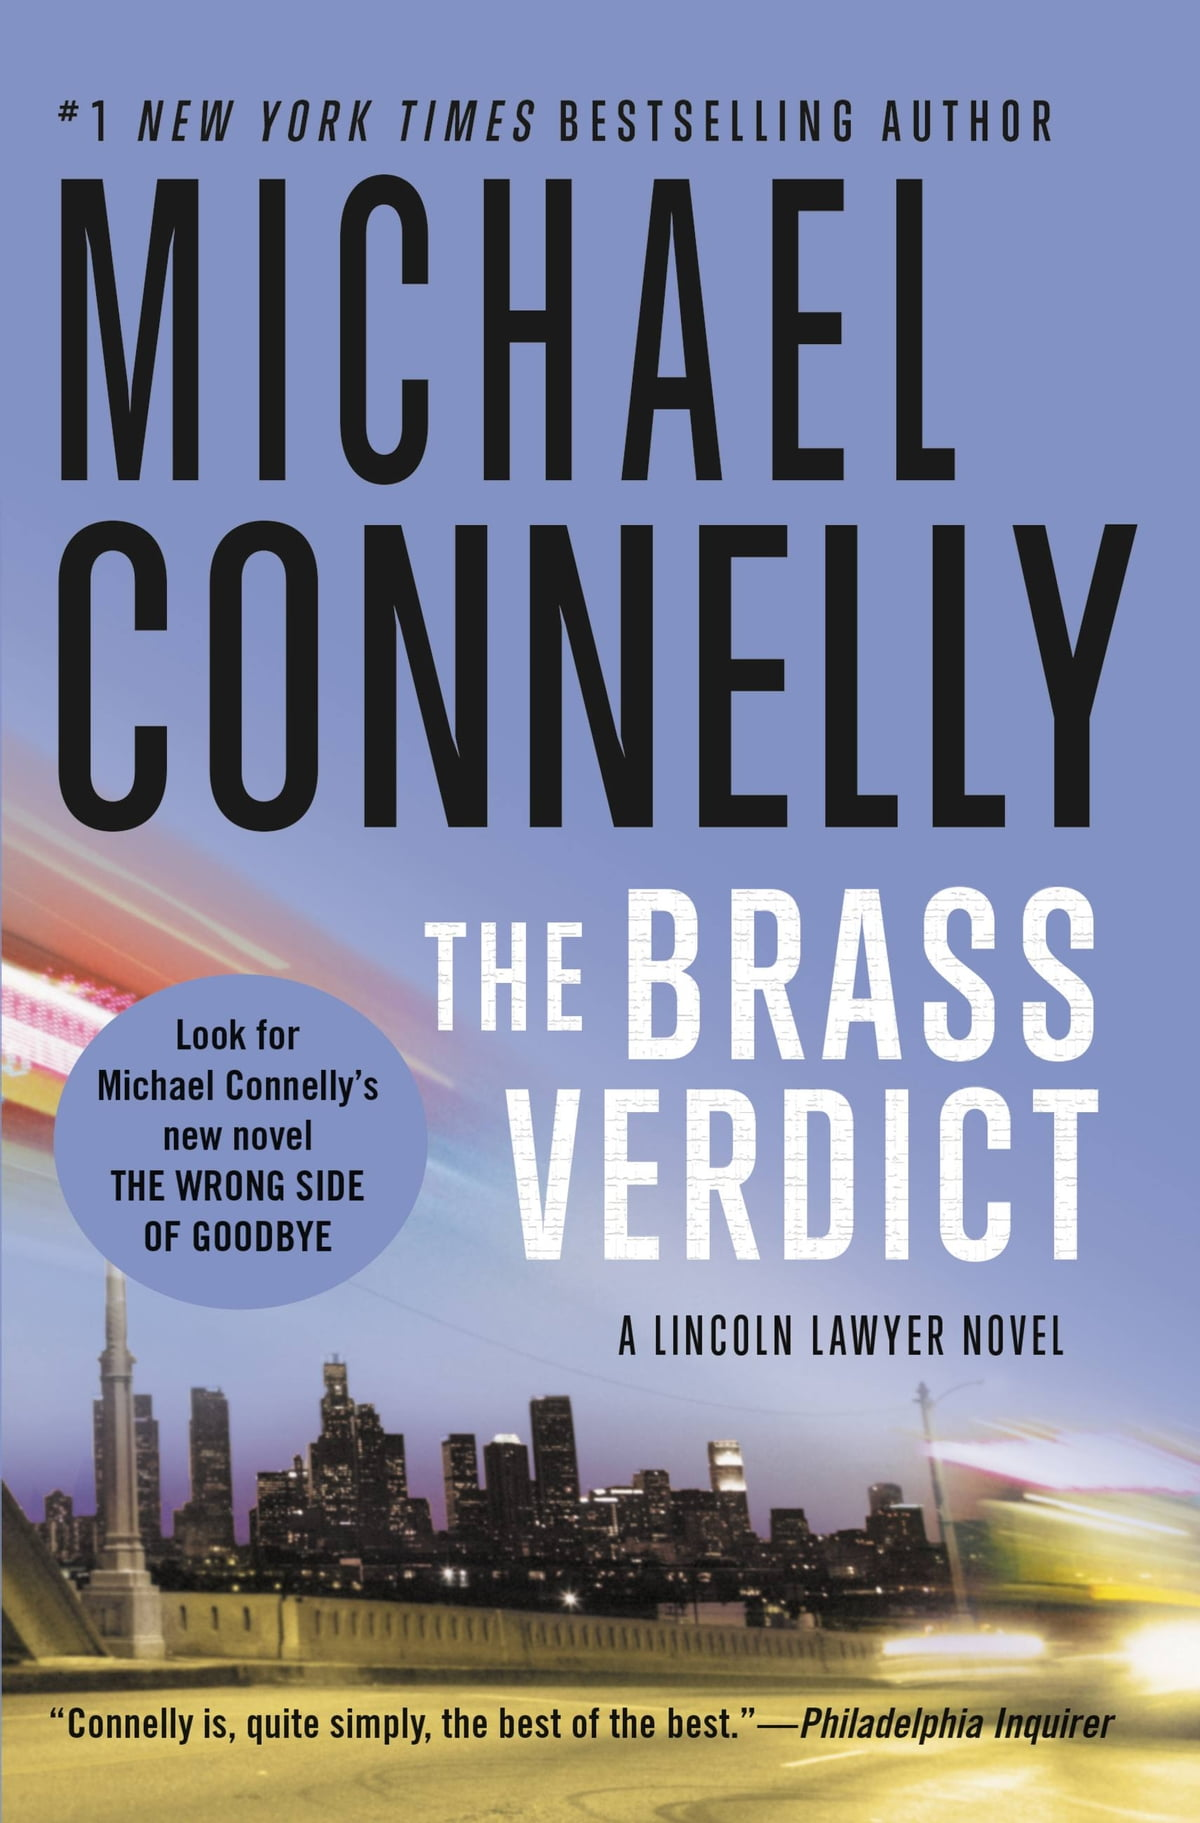 The brass verdict ebook by michael connelly 9780316040167 the brass verdict ebook by michael connelly 9780316040167 rakuten kobo fandeluxe Document